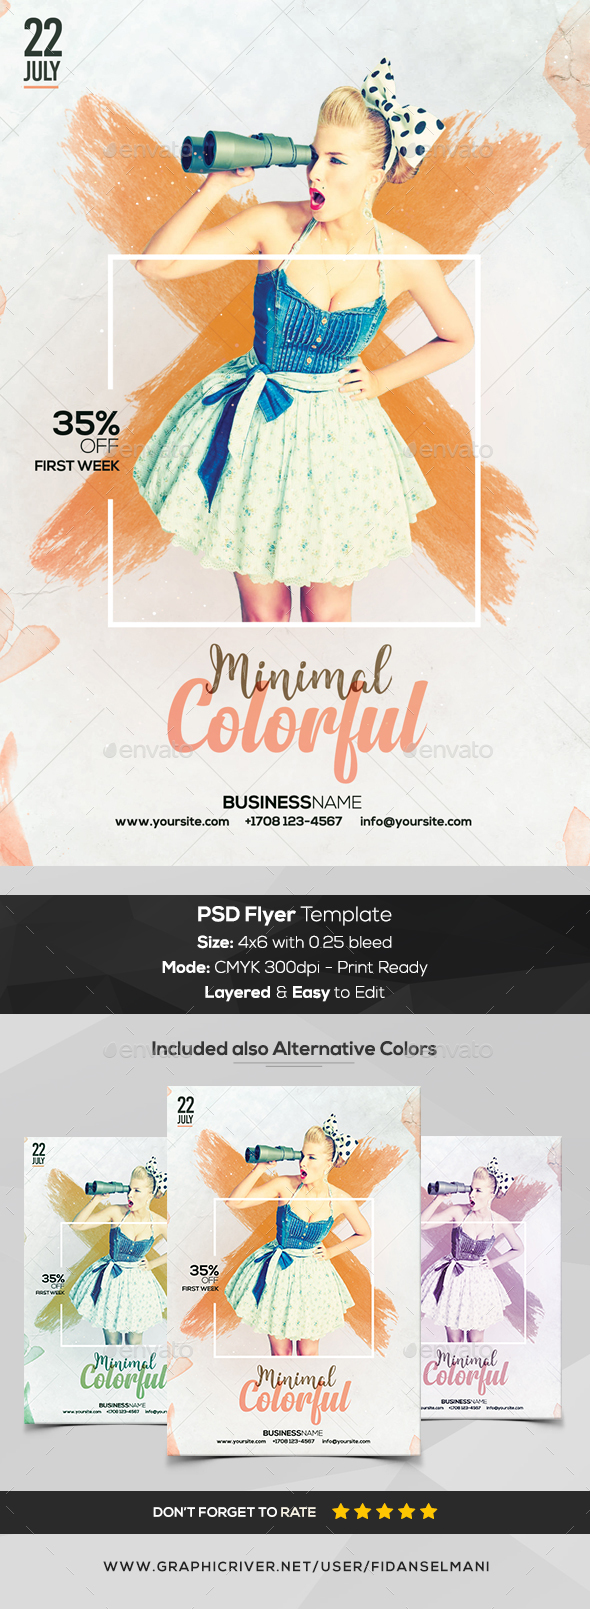 Colorful Minimal - PSD Flyer Template - Flyers Print Templates